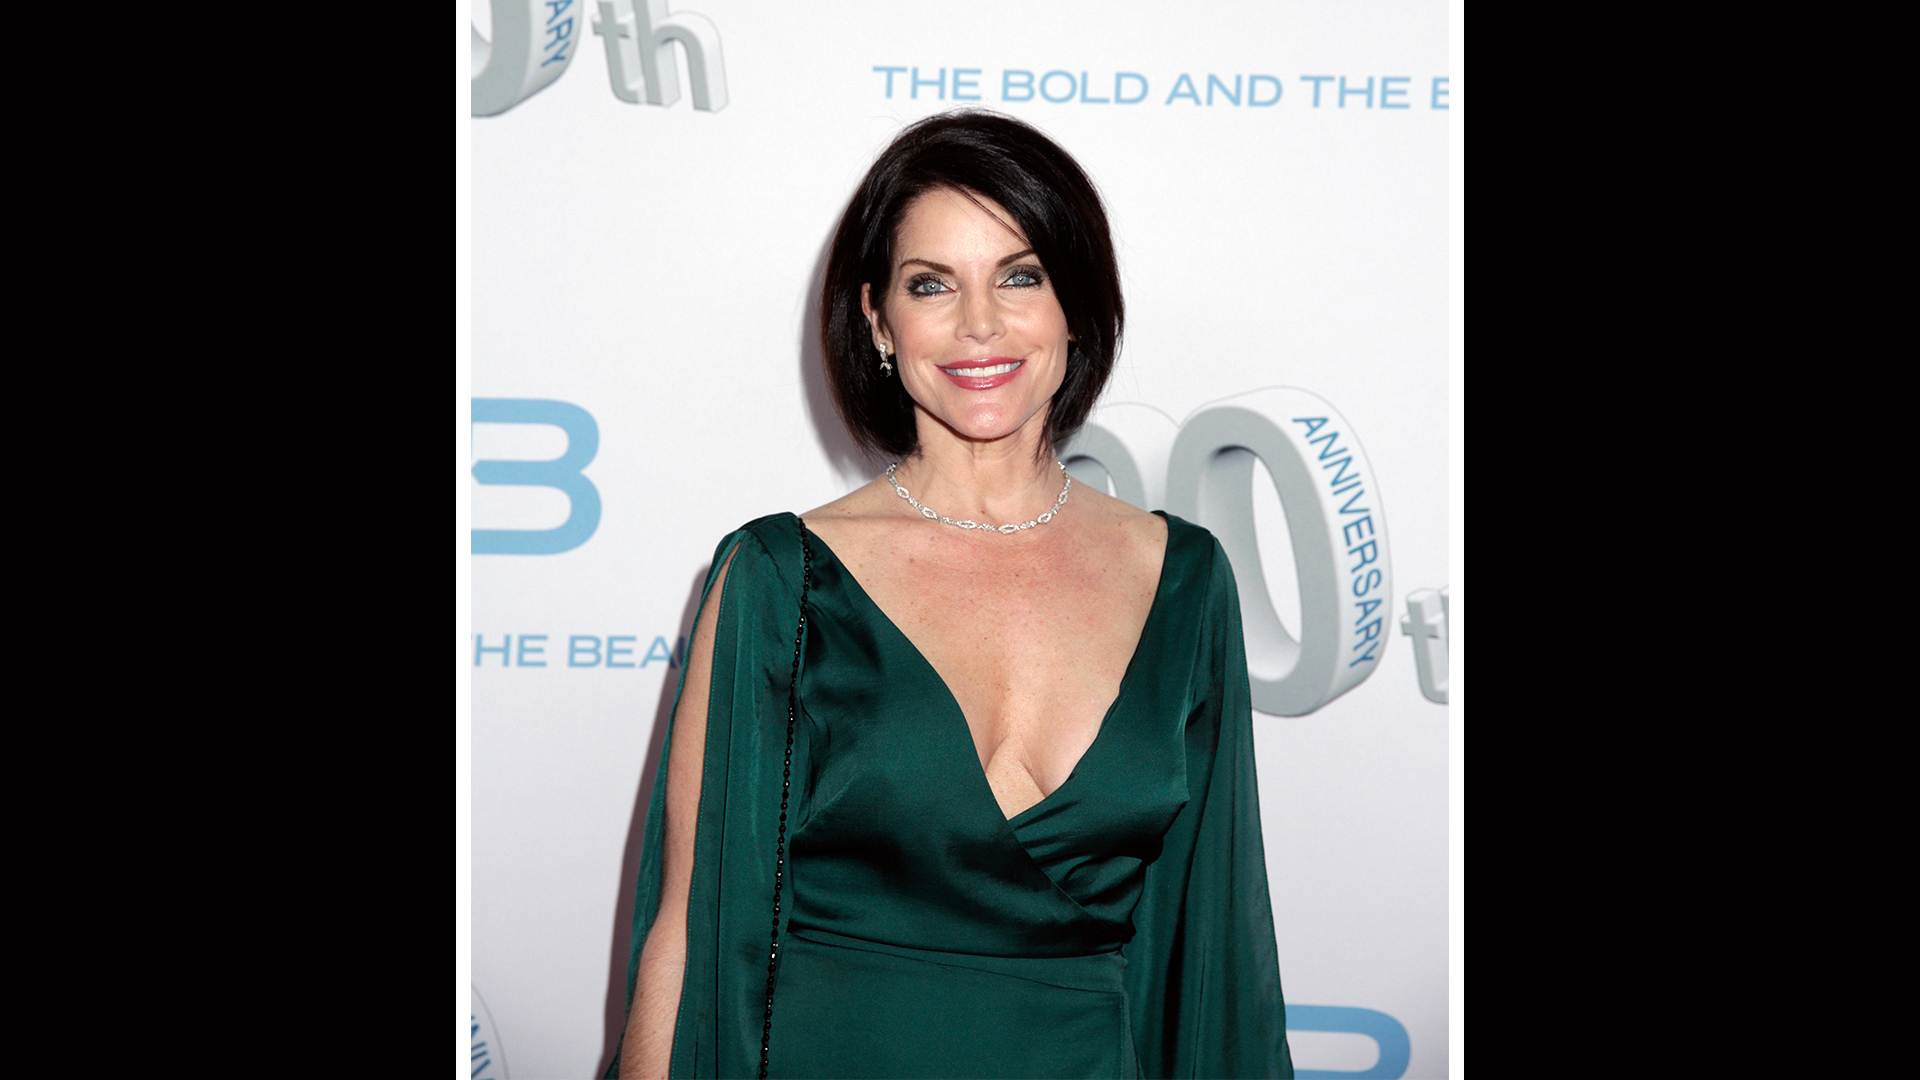 Lesli Kay's emerald-green dress brings out her striking eyes.